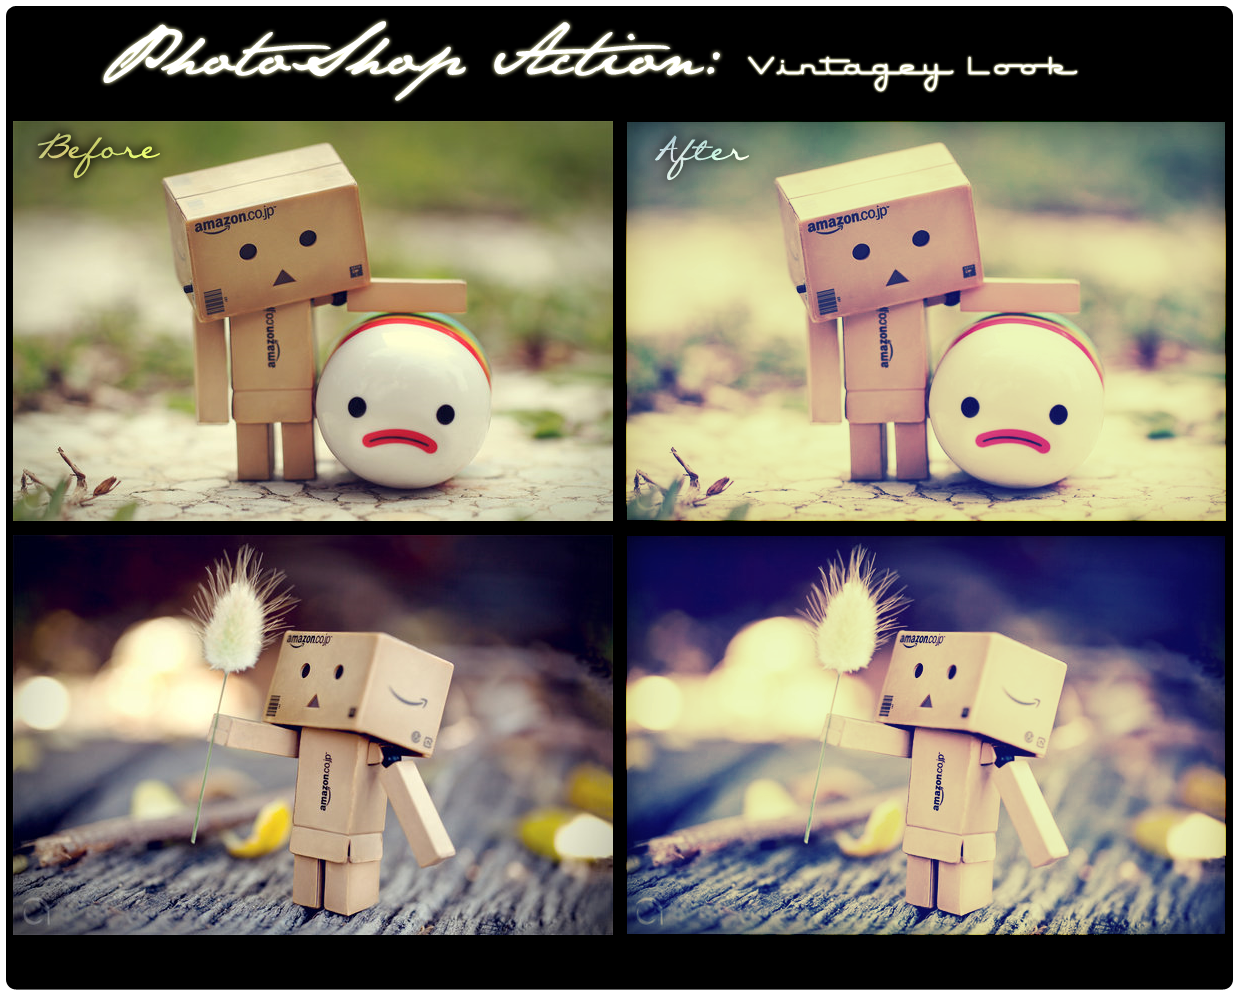 Photoshop Actions - Vintage by kailay